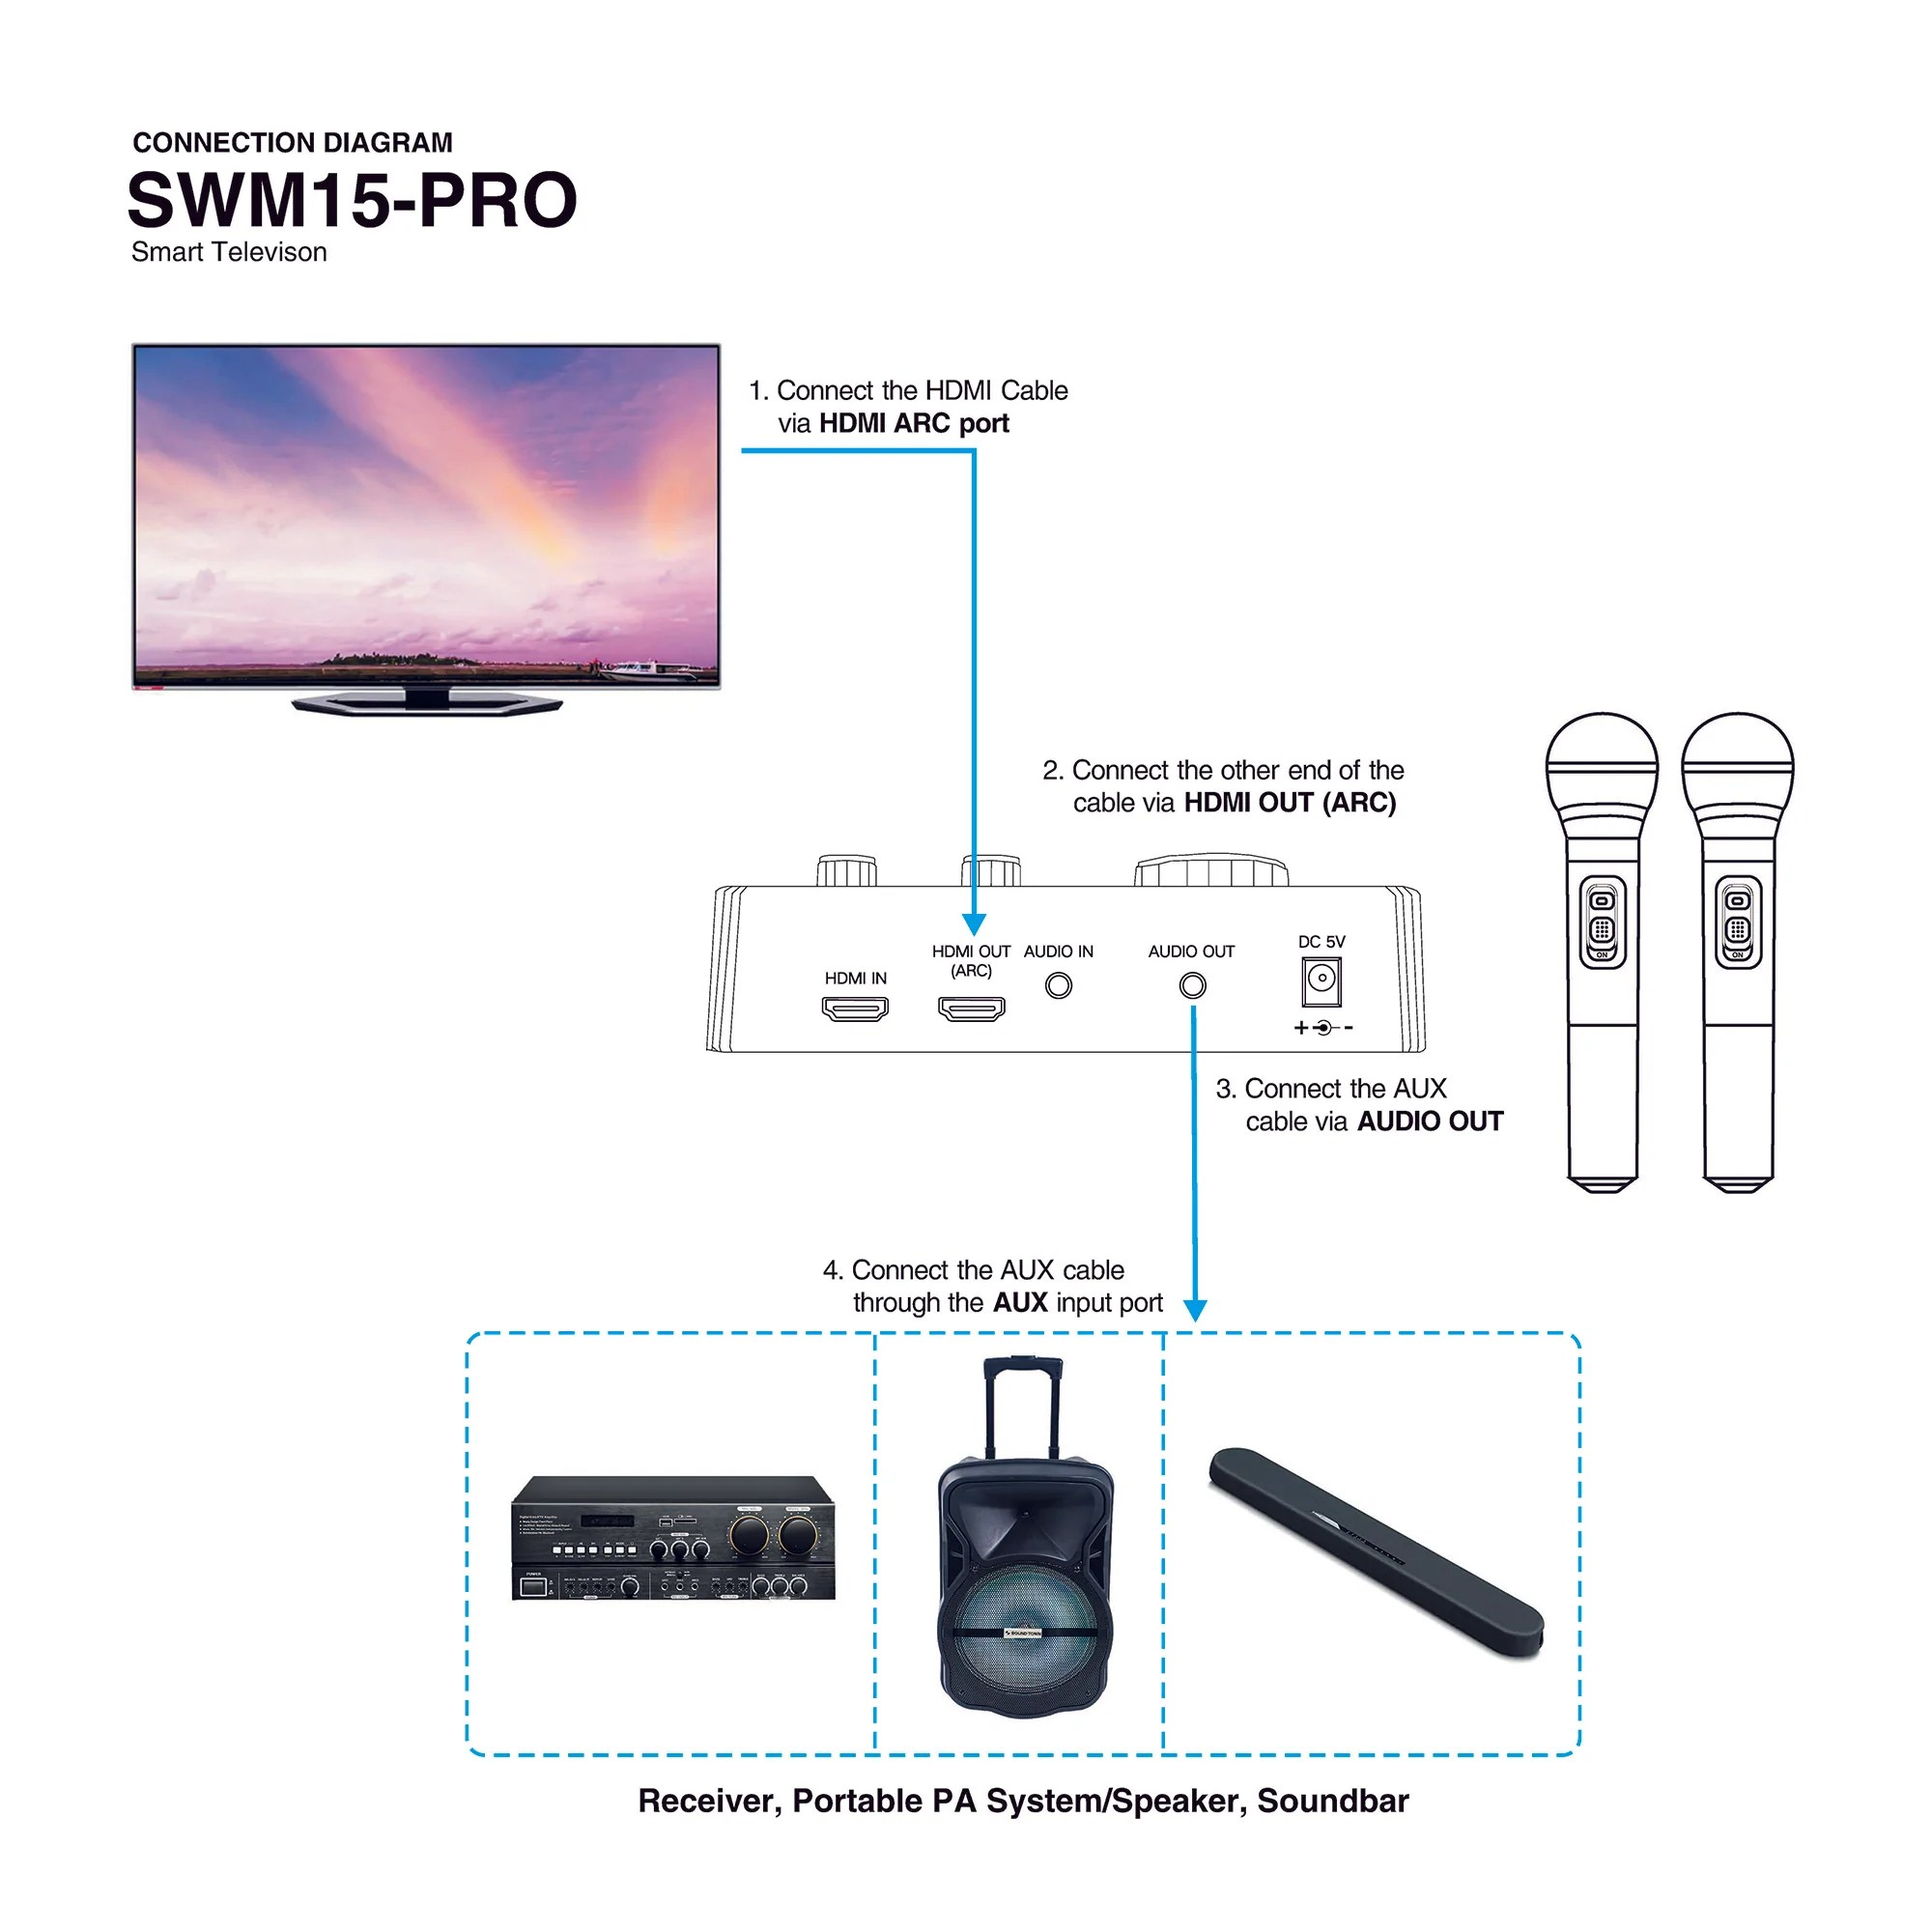 small resolution of  sound town swm15 pro karaoke microphone system connection diagram hdmi arc smart tv television how